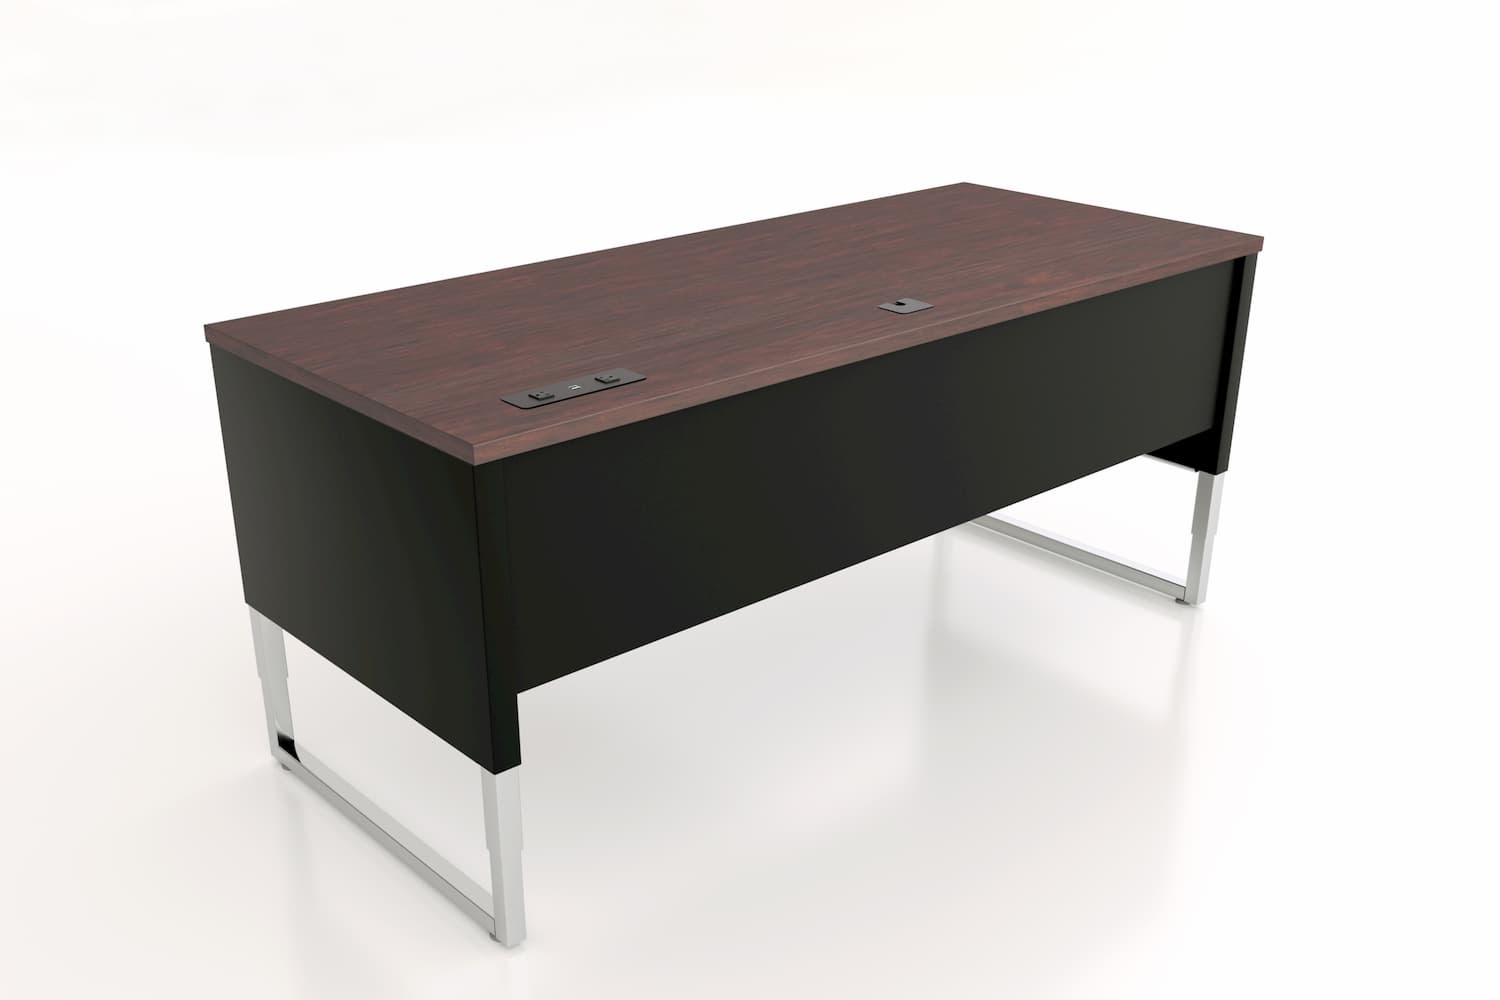 Advent-Desk-ADV-7230-BK-Custom-Top-7-Back